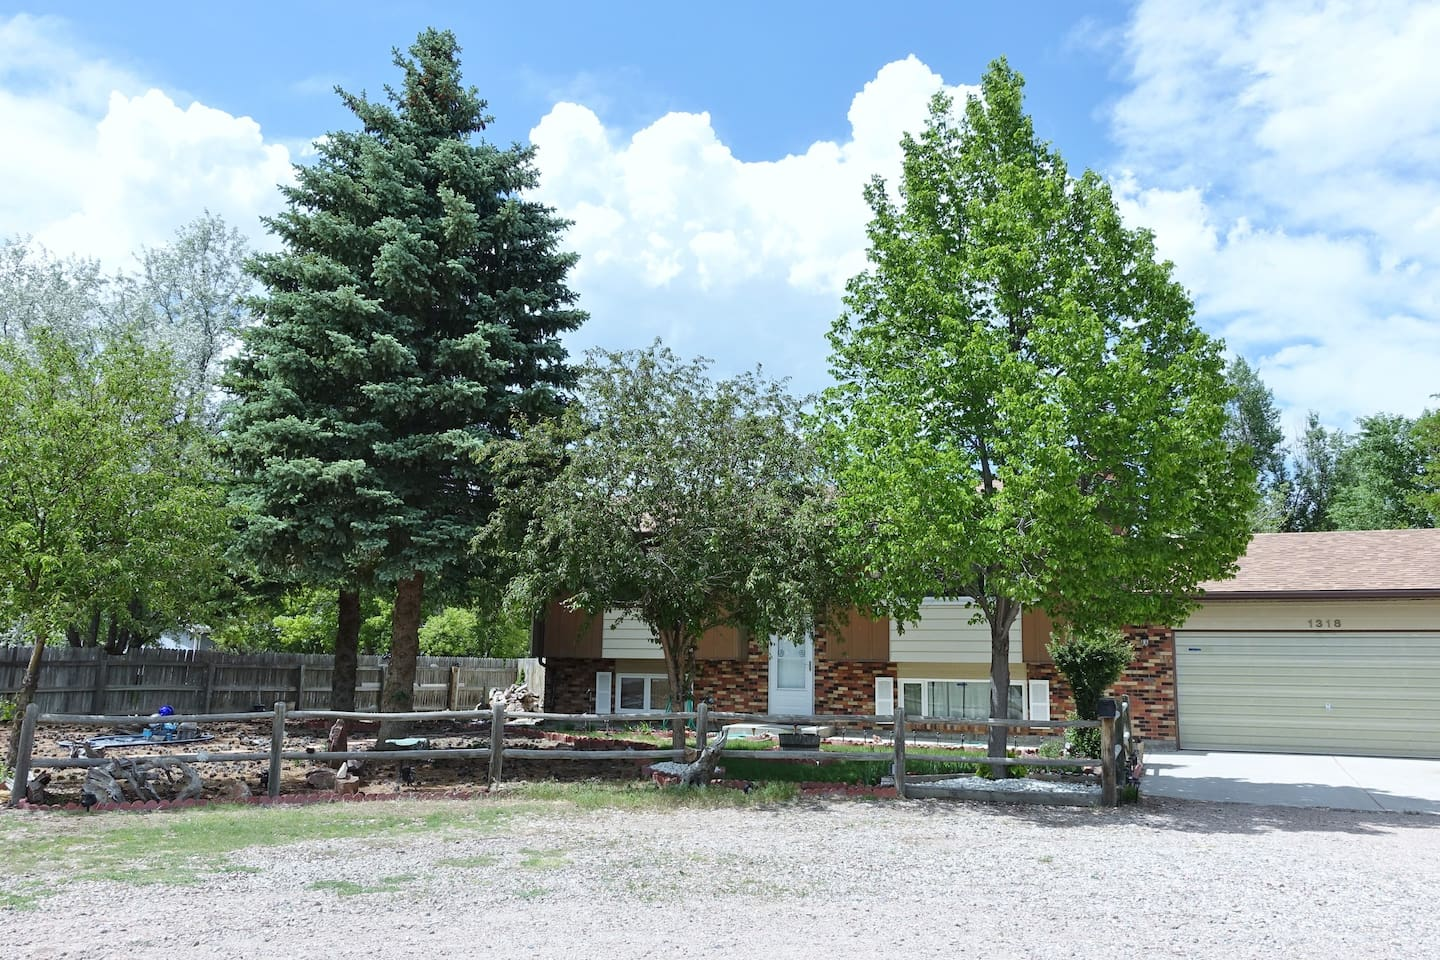 Front of House in June of 18